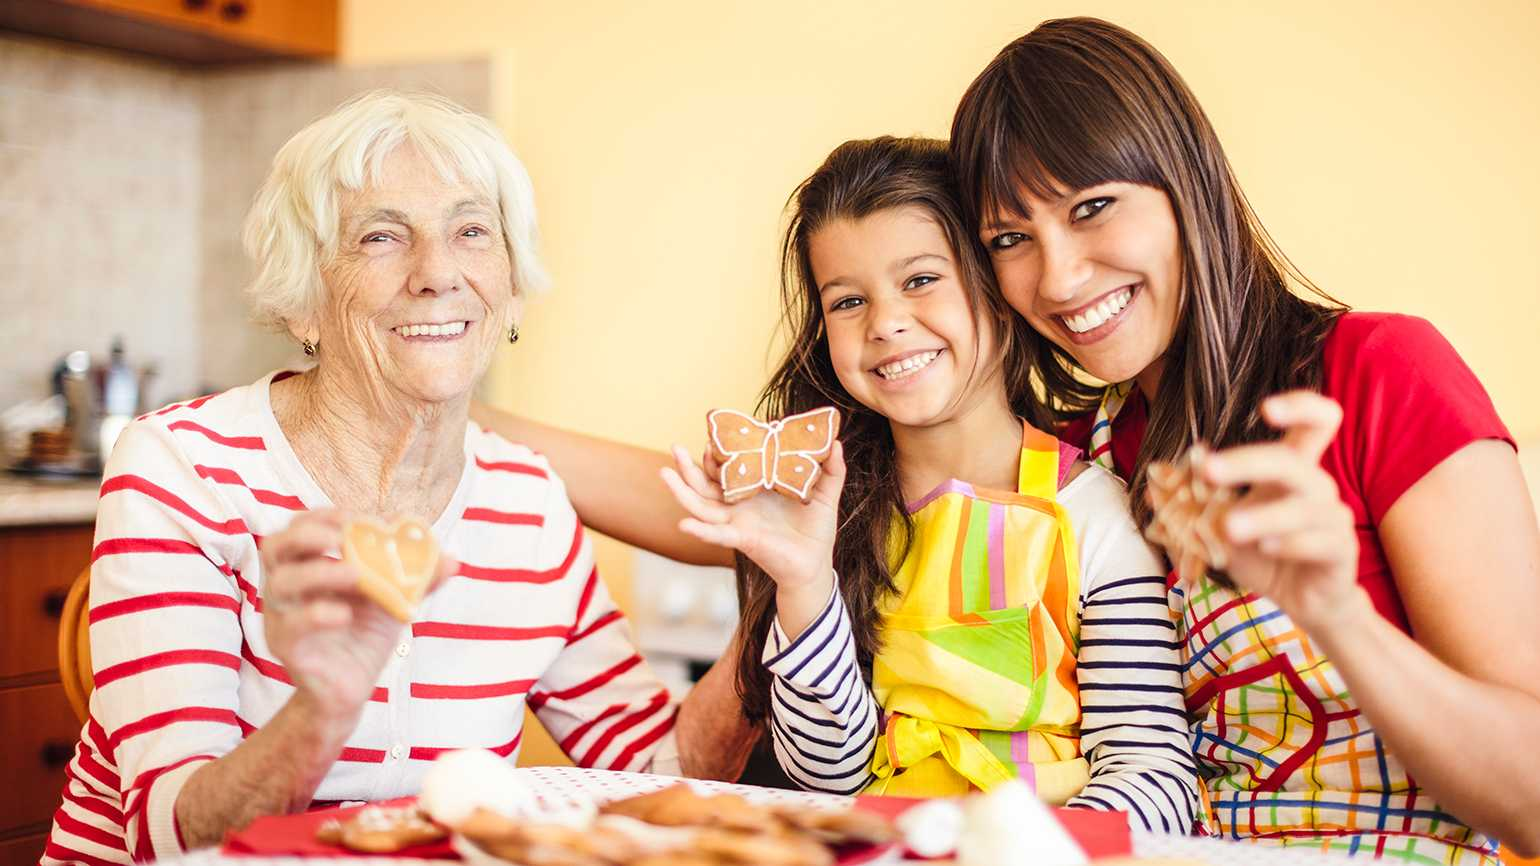 A senior woman, her daughter and granddaughter make holiday cookies